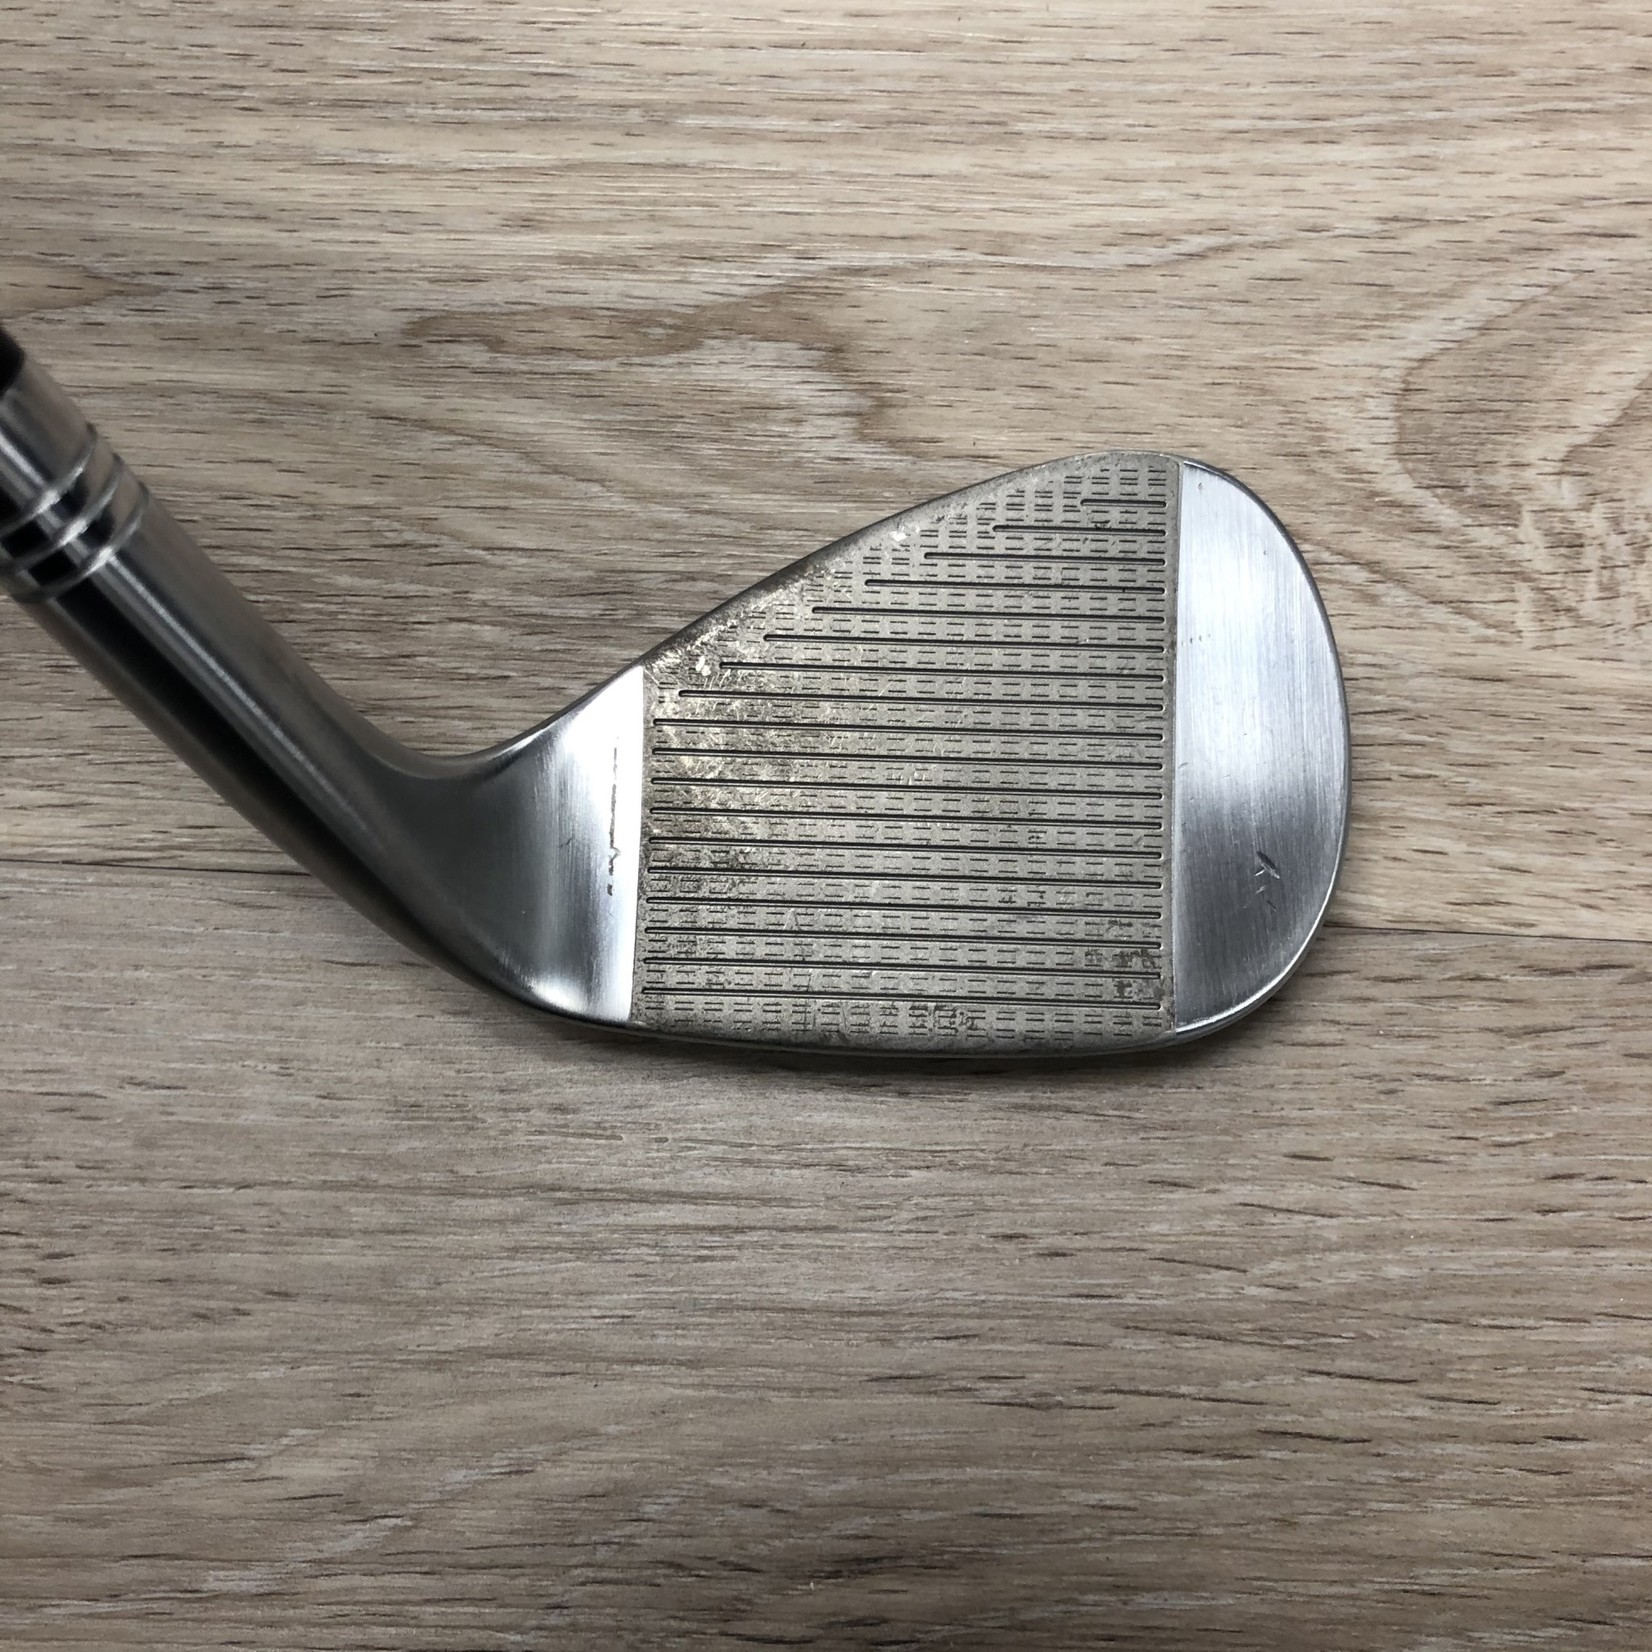 TaylorMade Taylormade MG2 Wedge 54* 11* (LH)